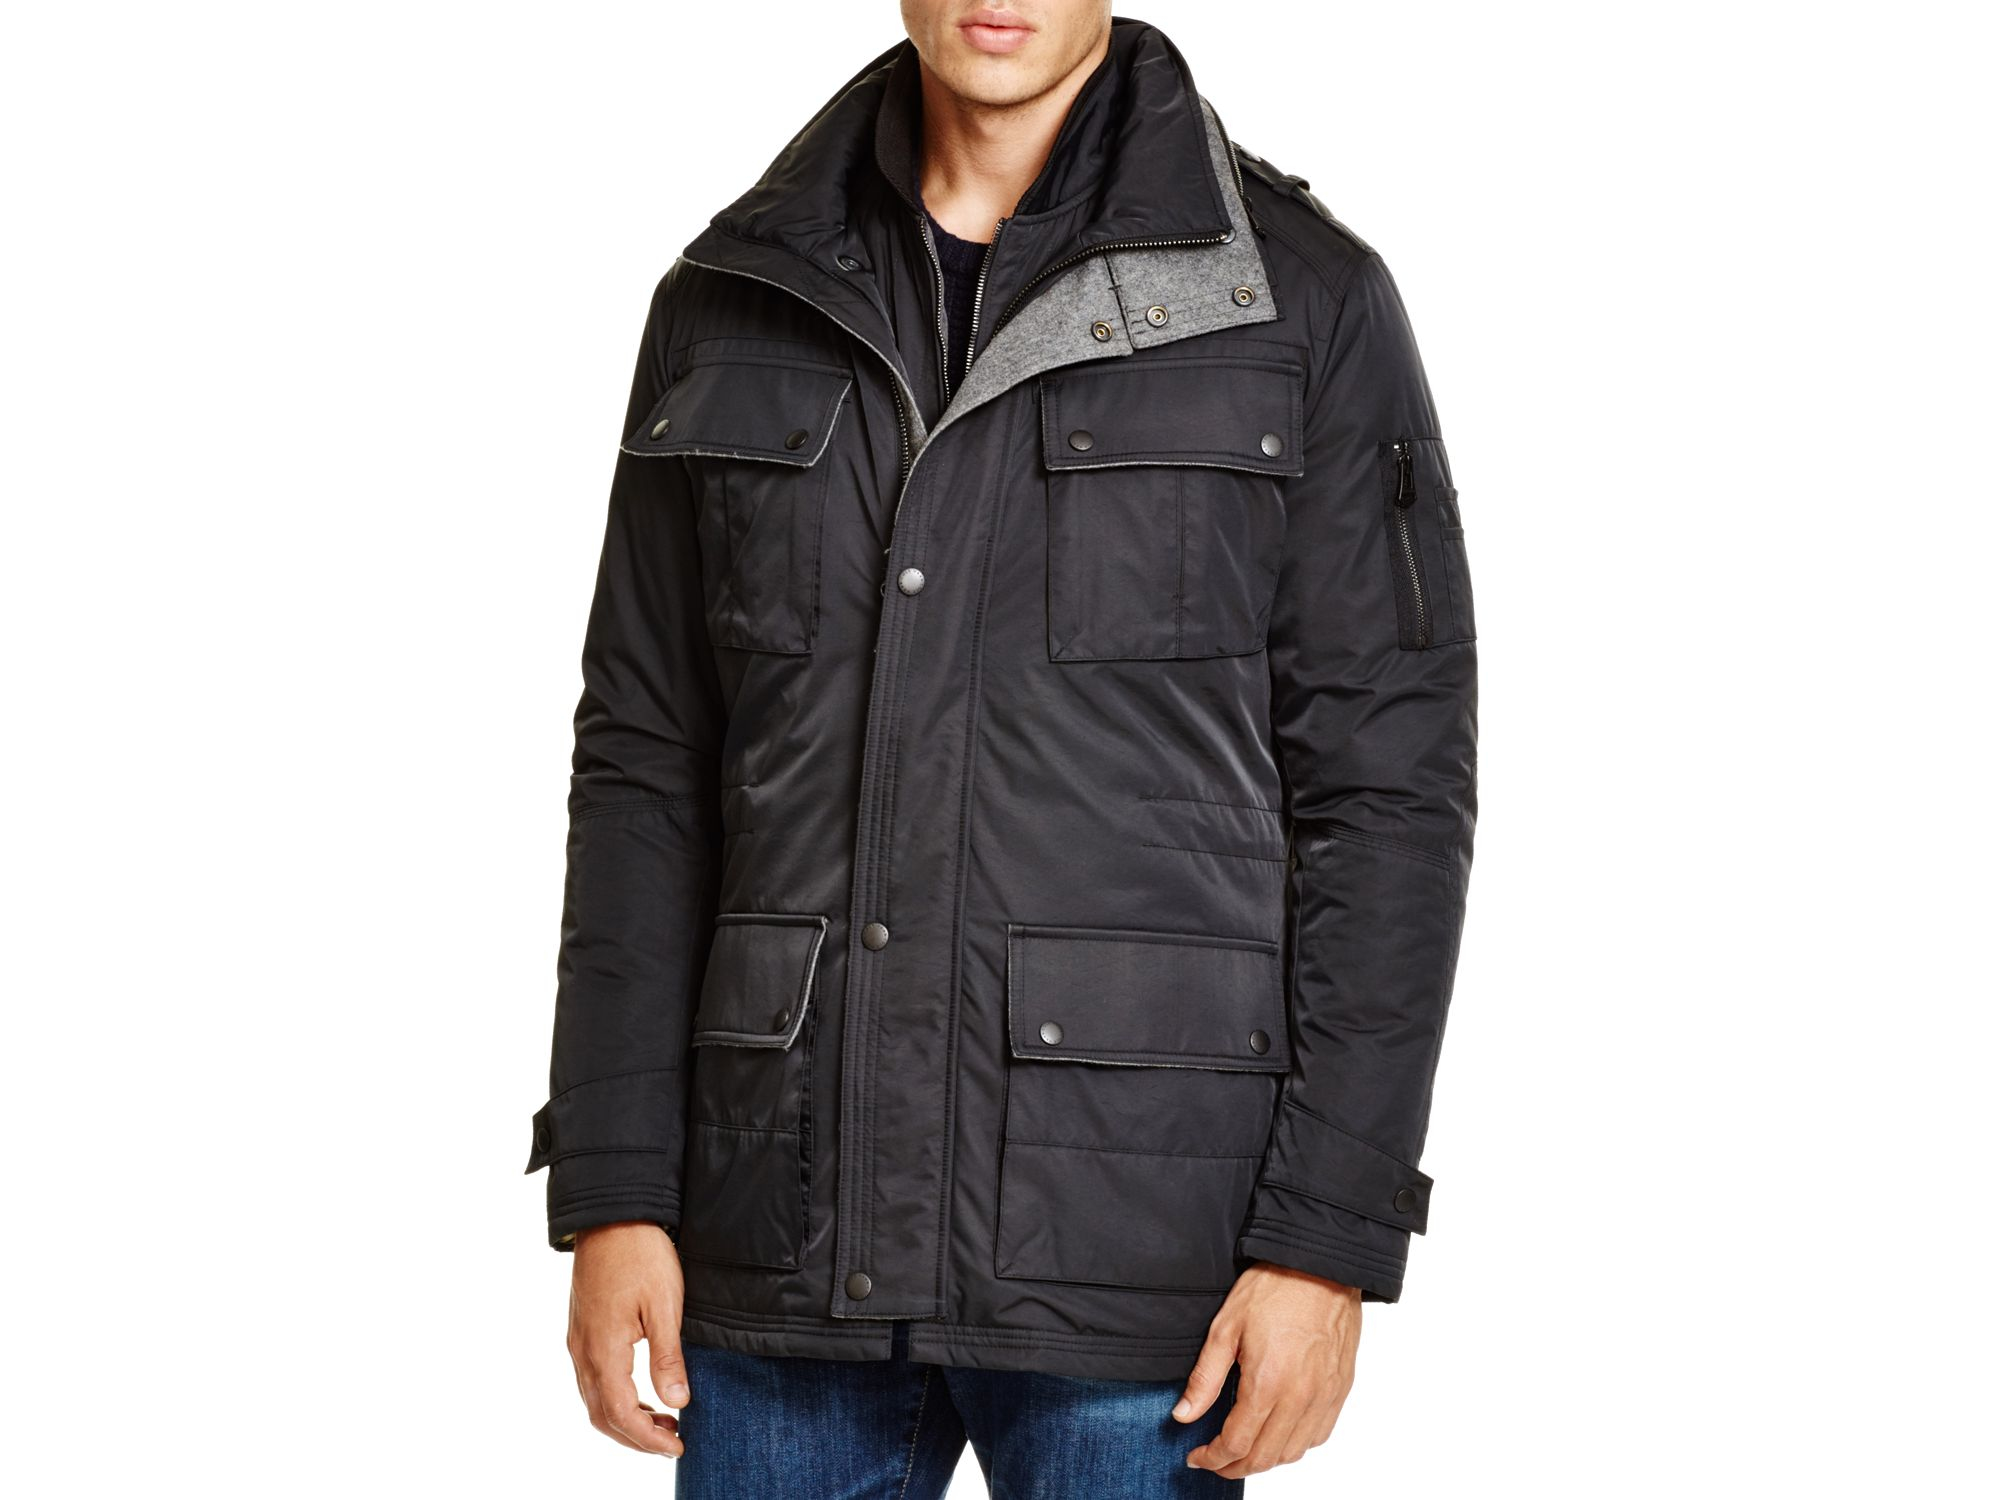 Cole Haan 3 In 1 Jacket In Black Lyst